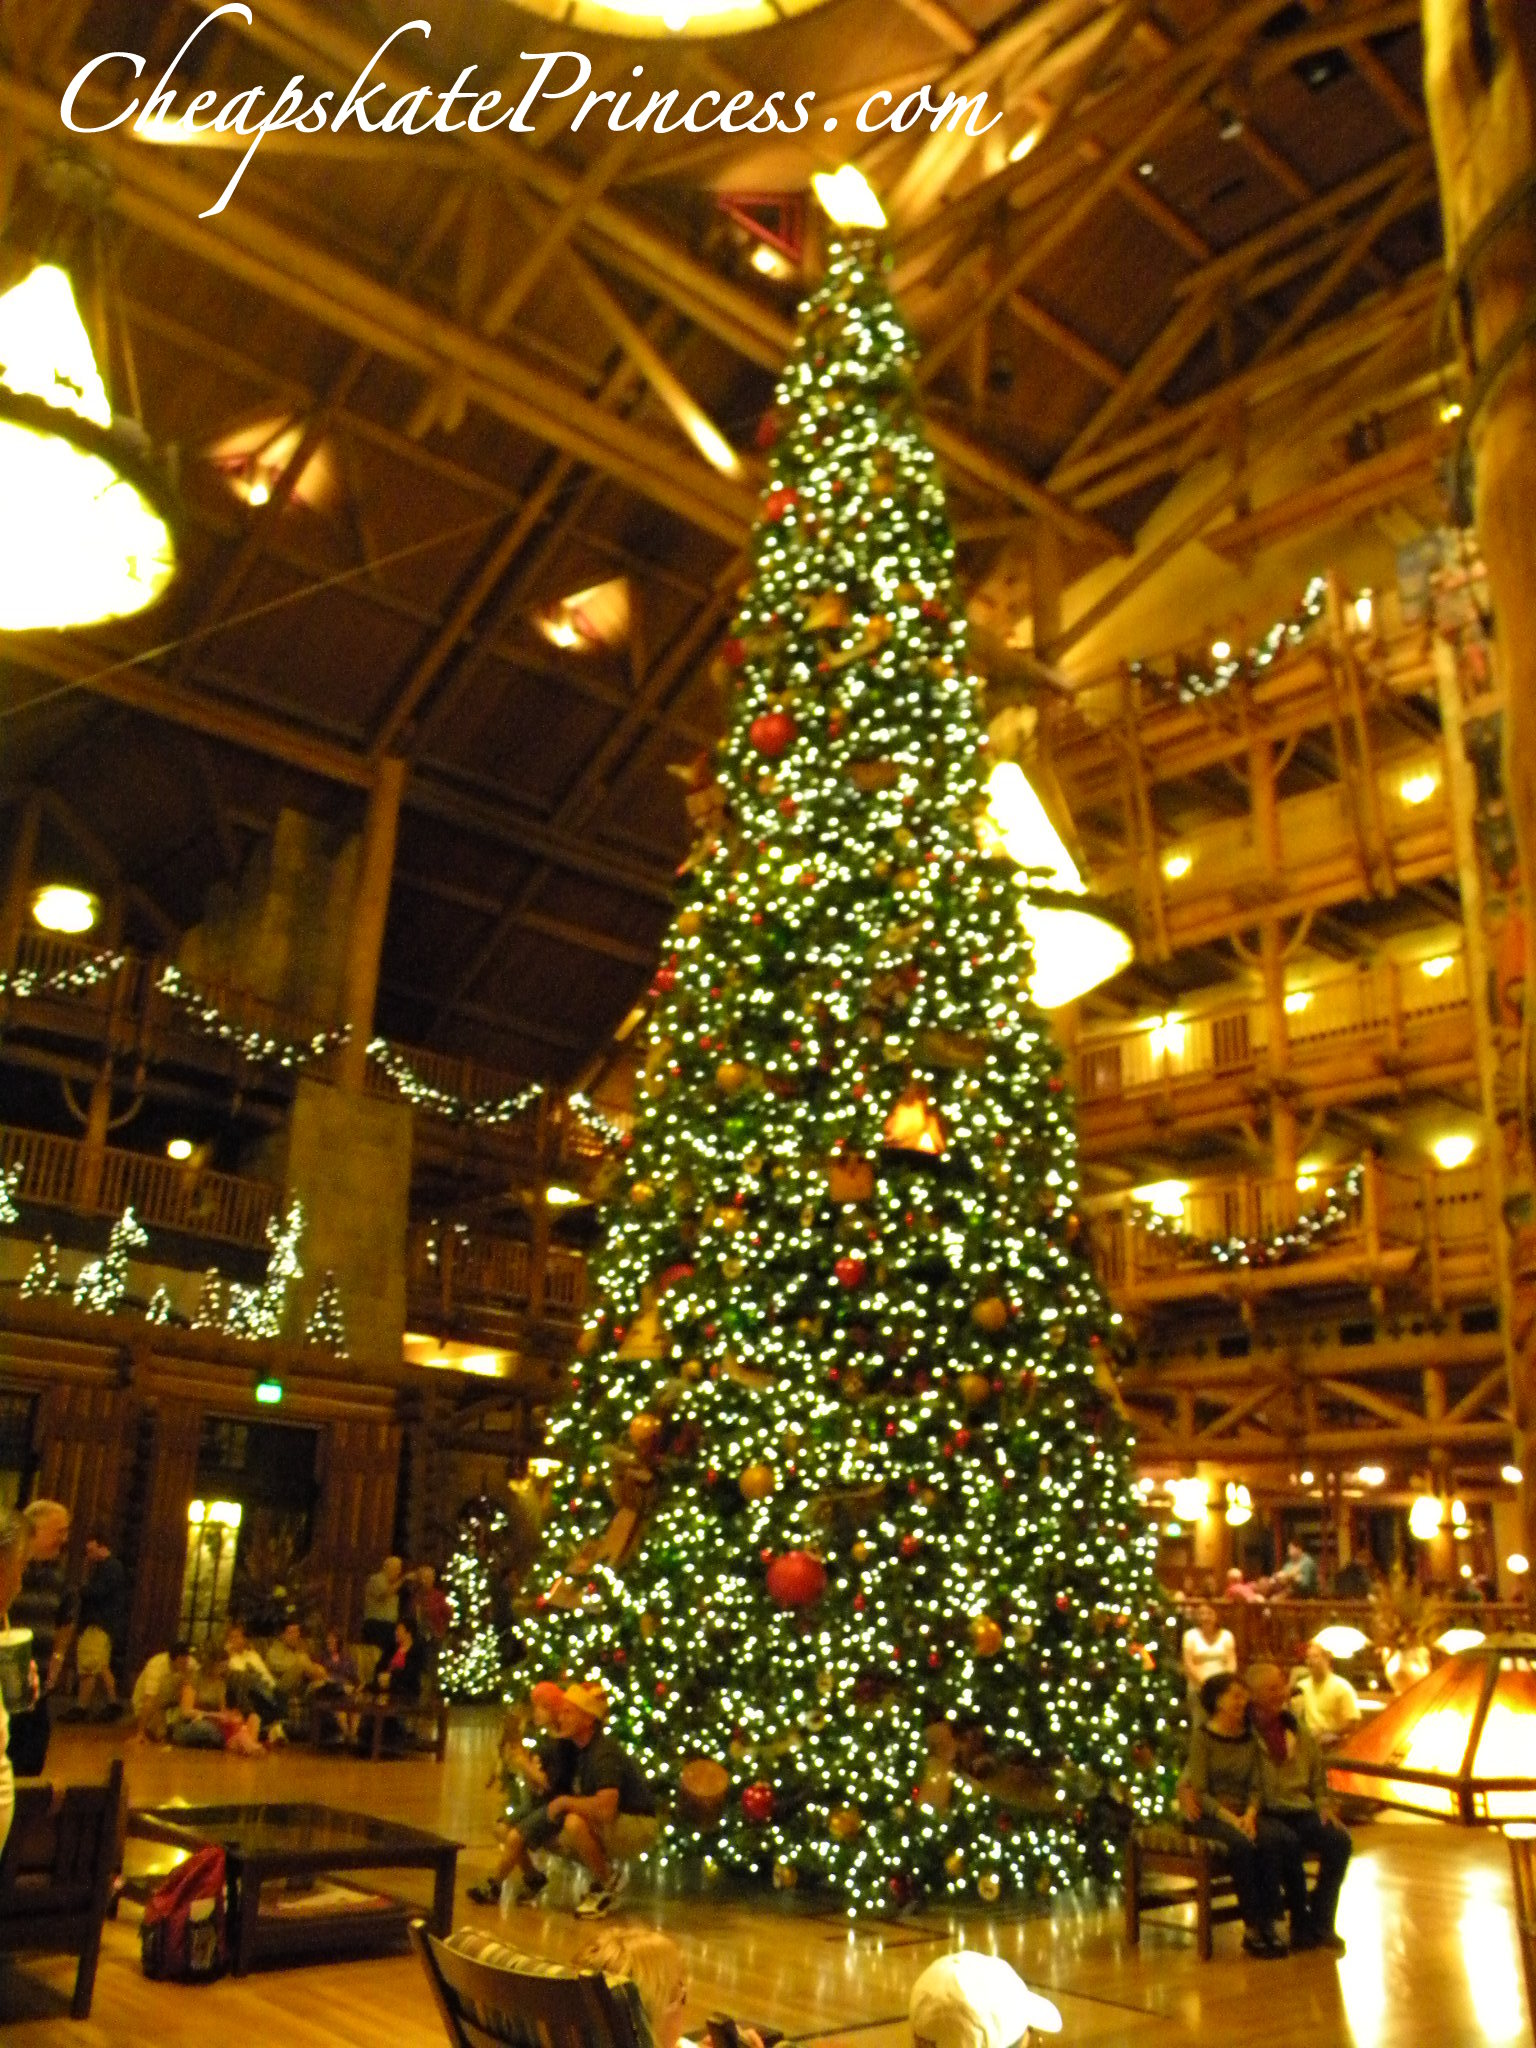 disney christmas tree wilderness lodge christmas tree christmas decorations at wilderness lodge disney